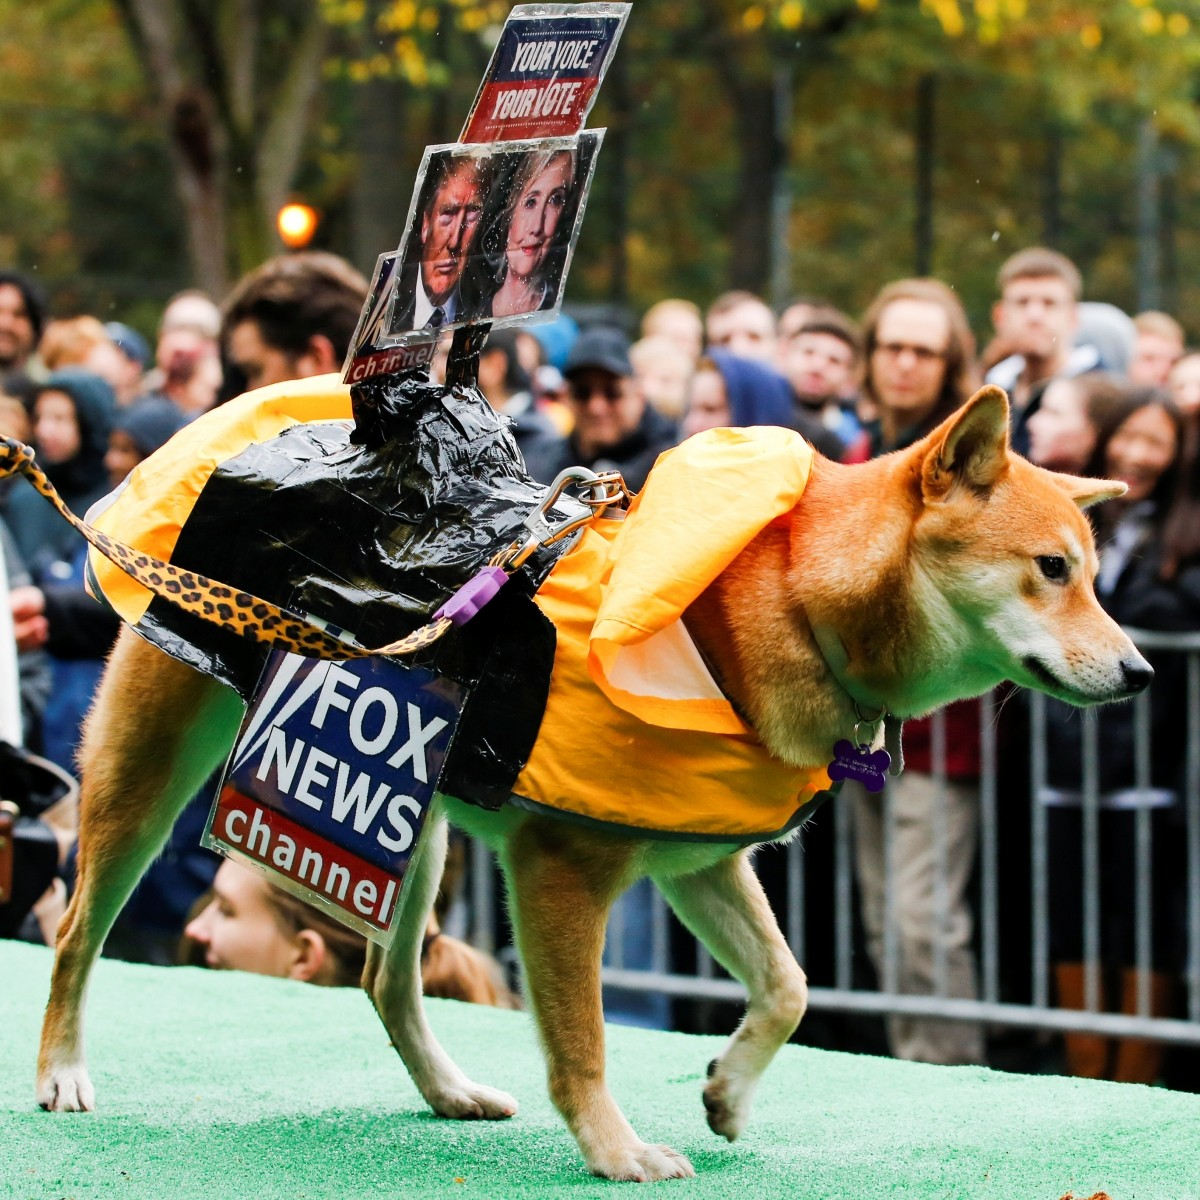 A dog dressed as Fox News channel with the pictures of Democratic U.S. presidential nominee Hillary Clinton (R) and Republican U.S. presidential nominee Donald Trump takes part in the annual halloween dog parade at Manhattan's Tompkins Square Park in New York, U.S. October 22, 2016.